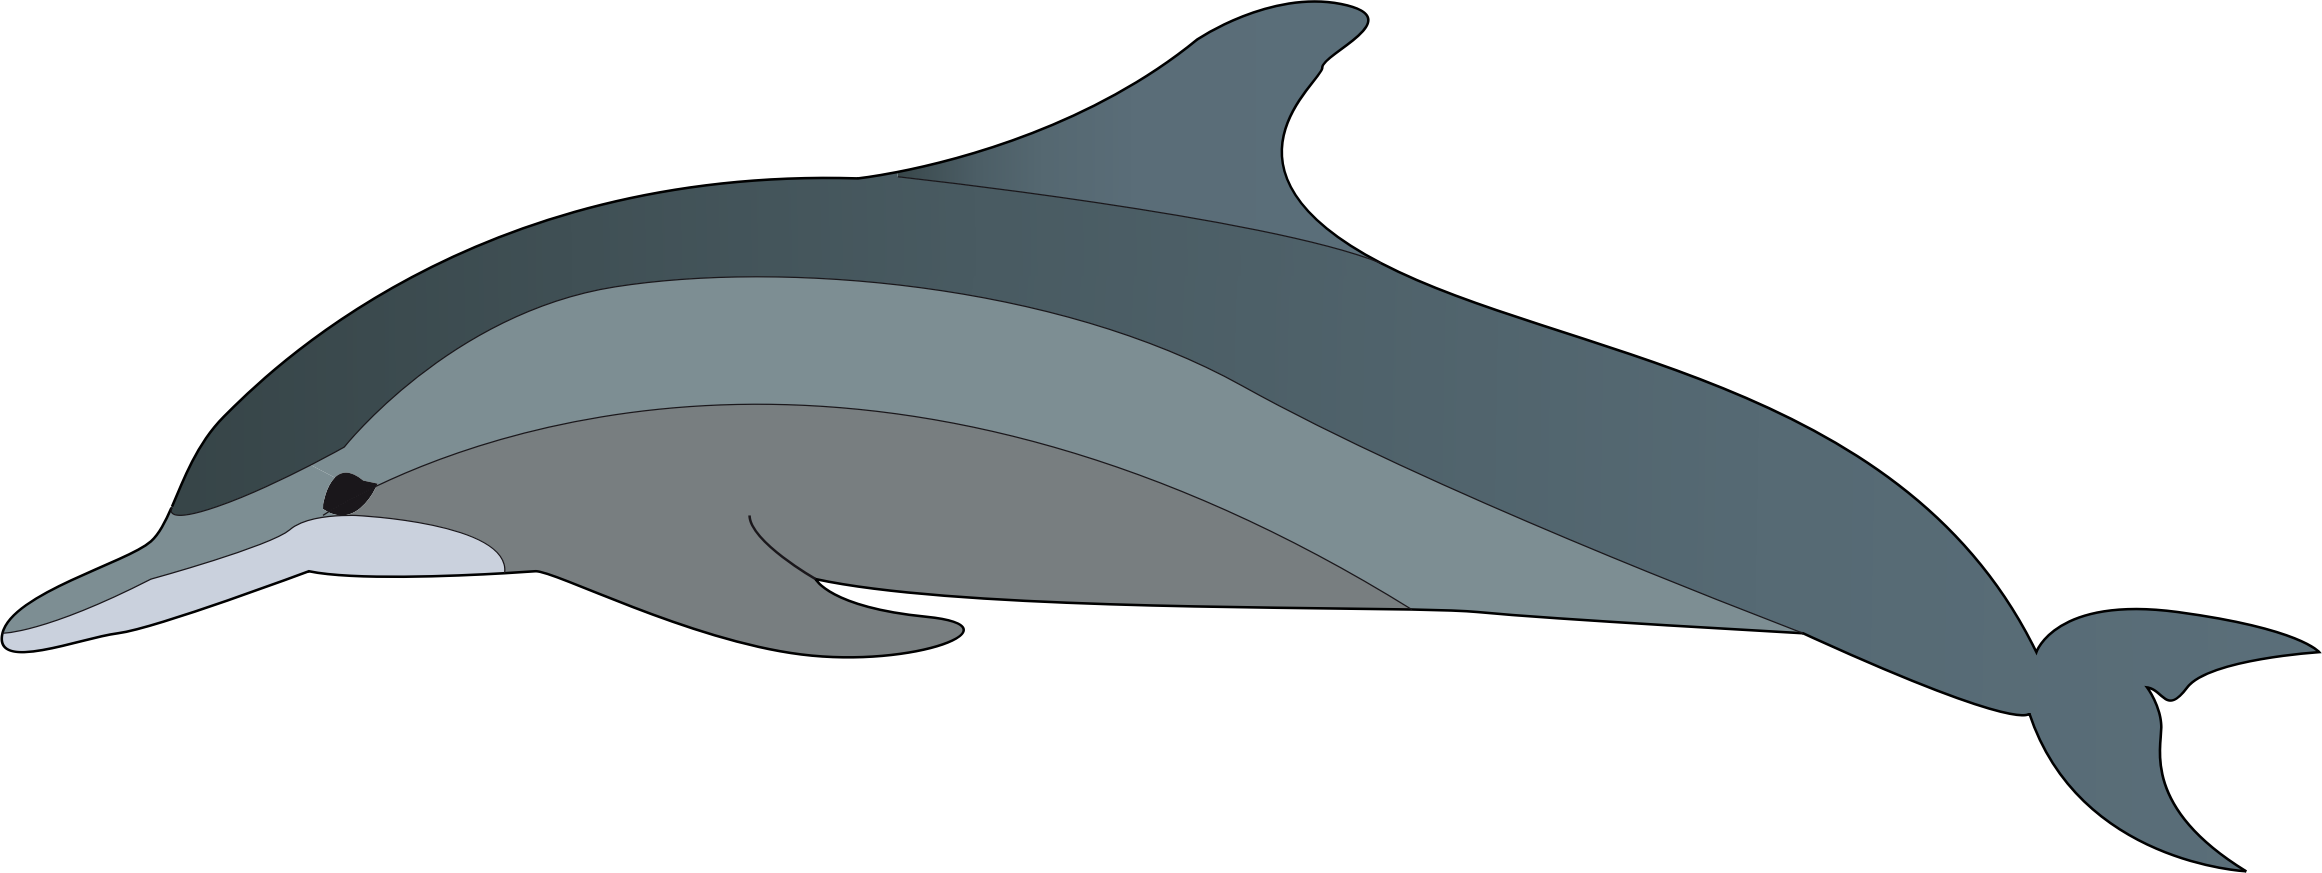 Big image png. Dolphin clipart small dolphin